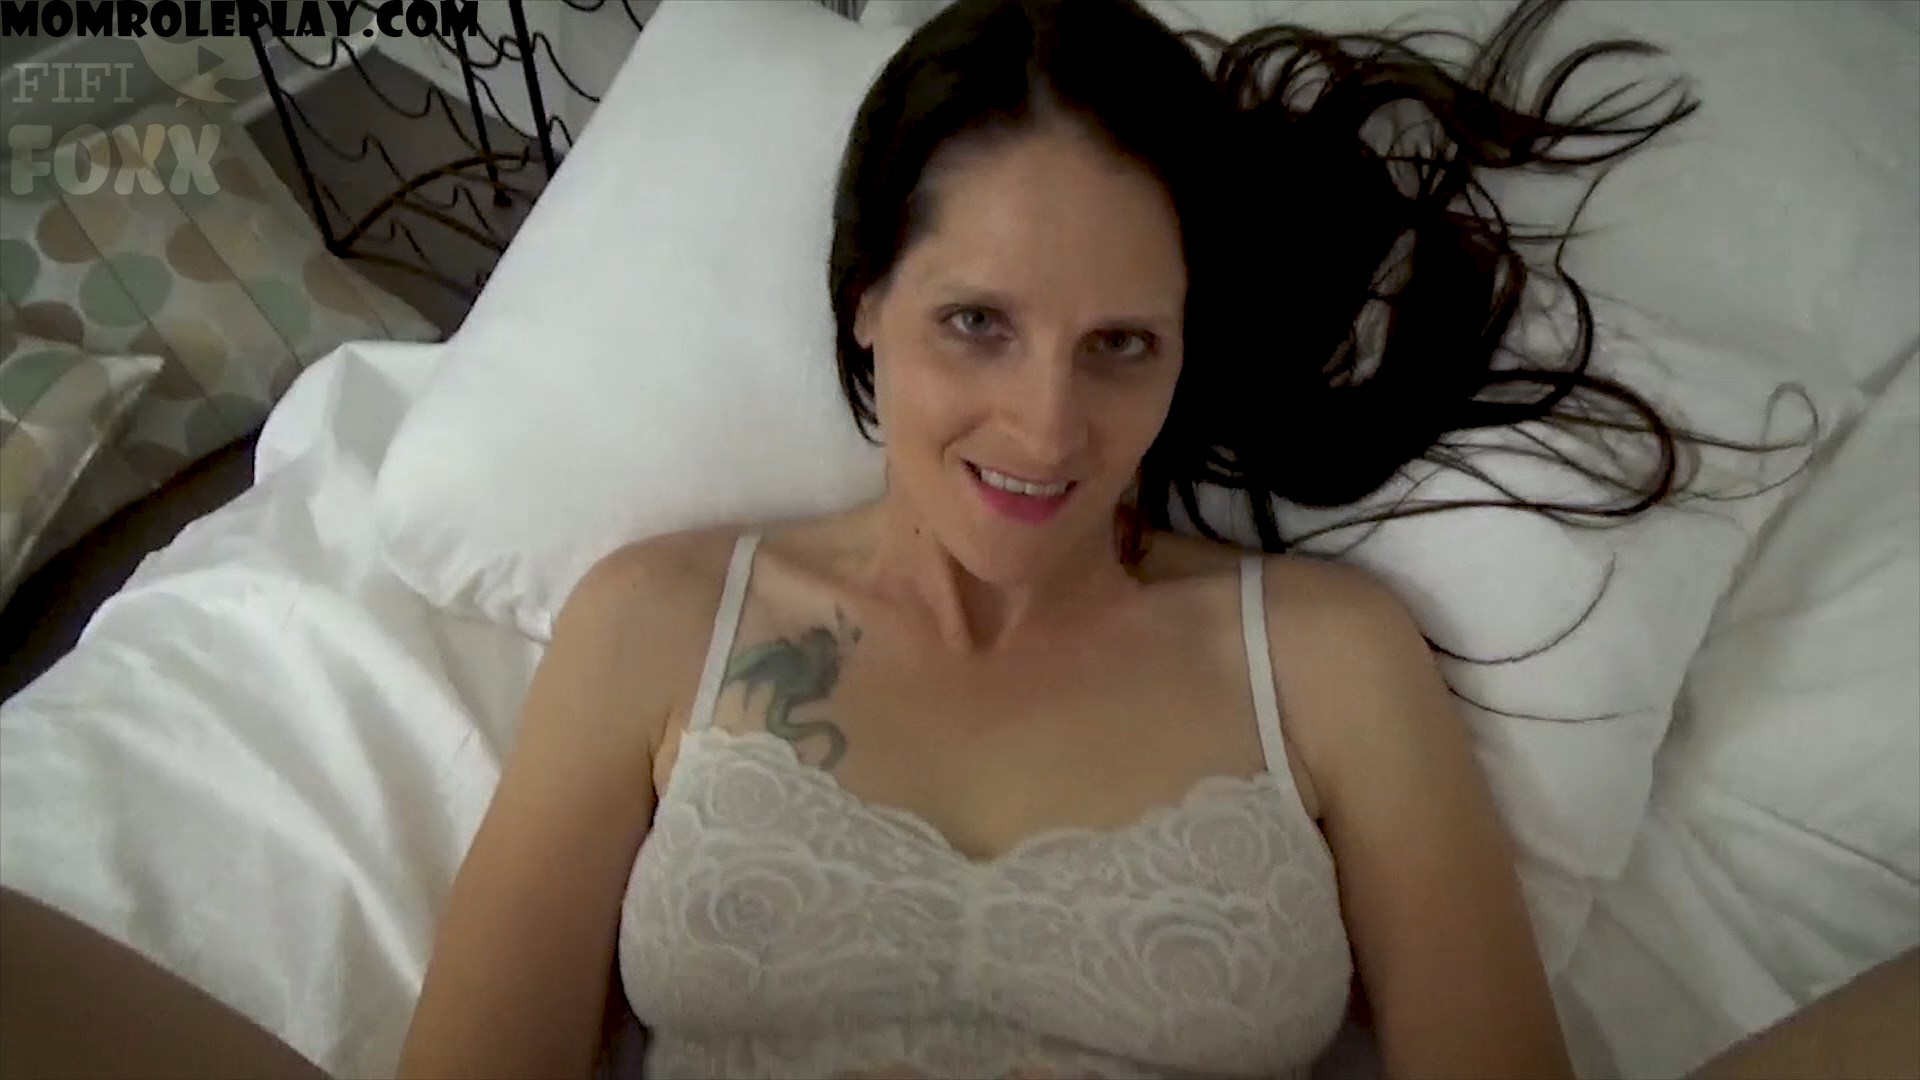 Fifi Foxx Fantasies - Christina Sapphire - Mom & Son Share a Bed - Mom Wakes Up to Son Masturbating Beside Her & Helps Him Get off, POV - HD 1080p